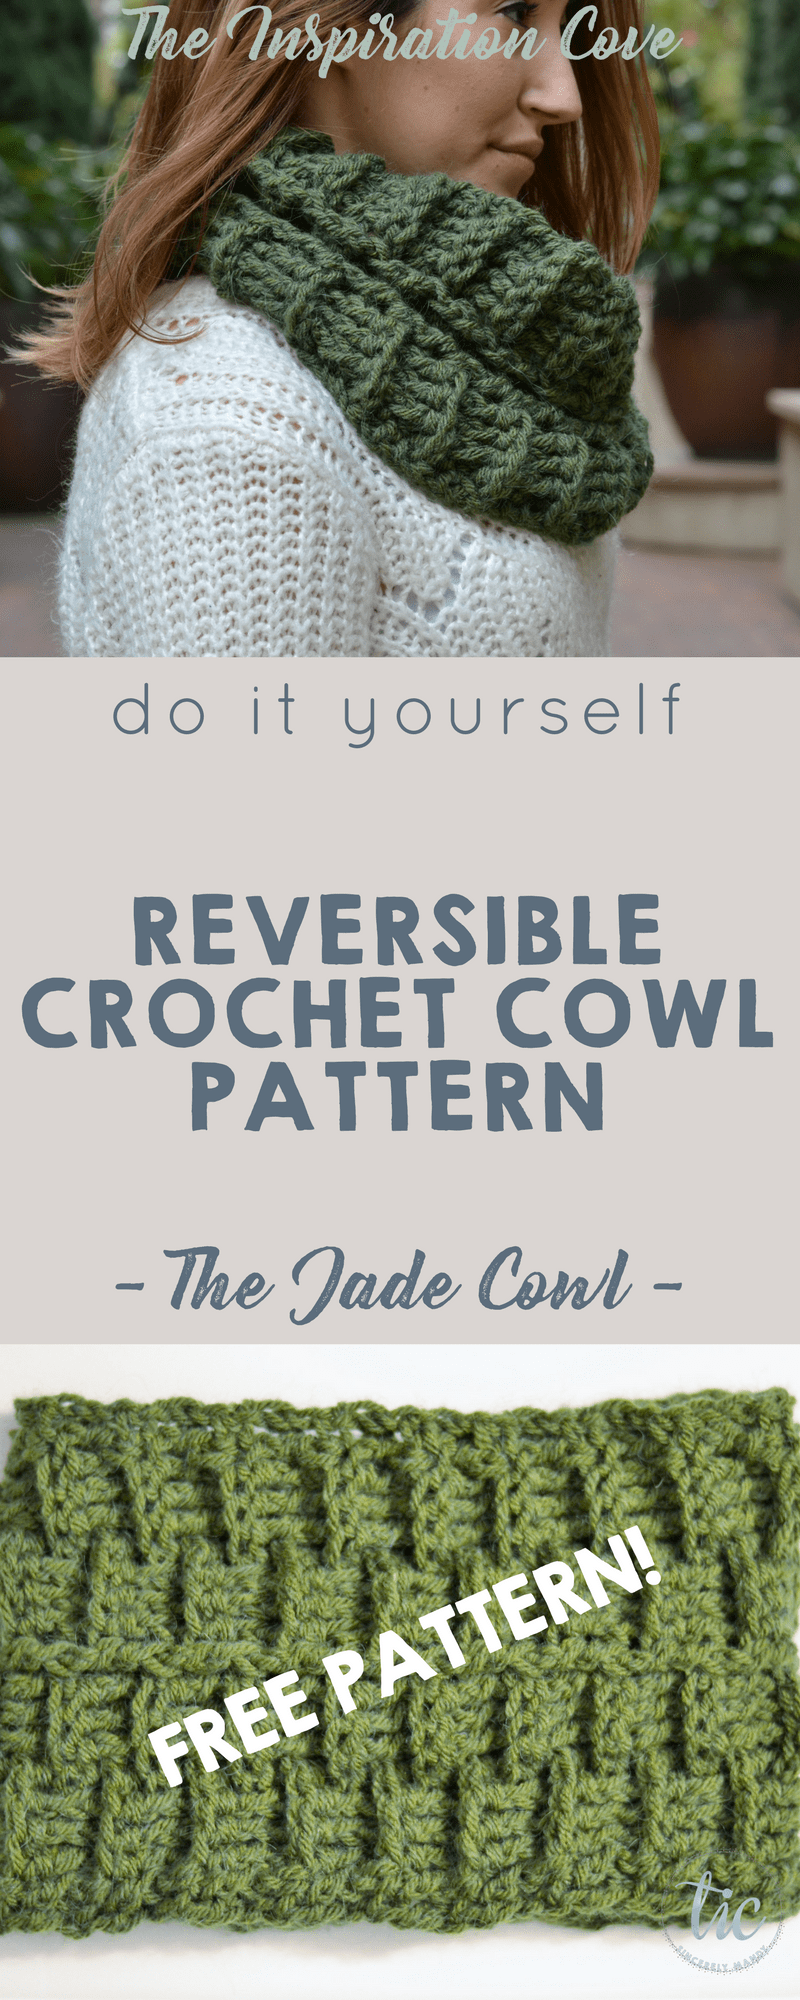 Do it Yourself - The Jade Crochet Cowl Pattern - Free Crochet ...